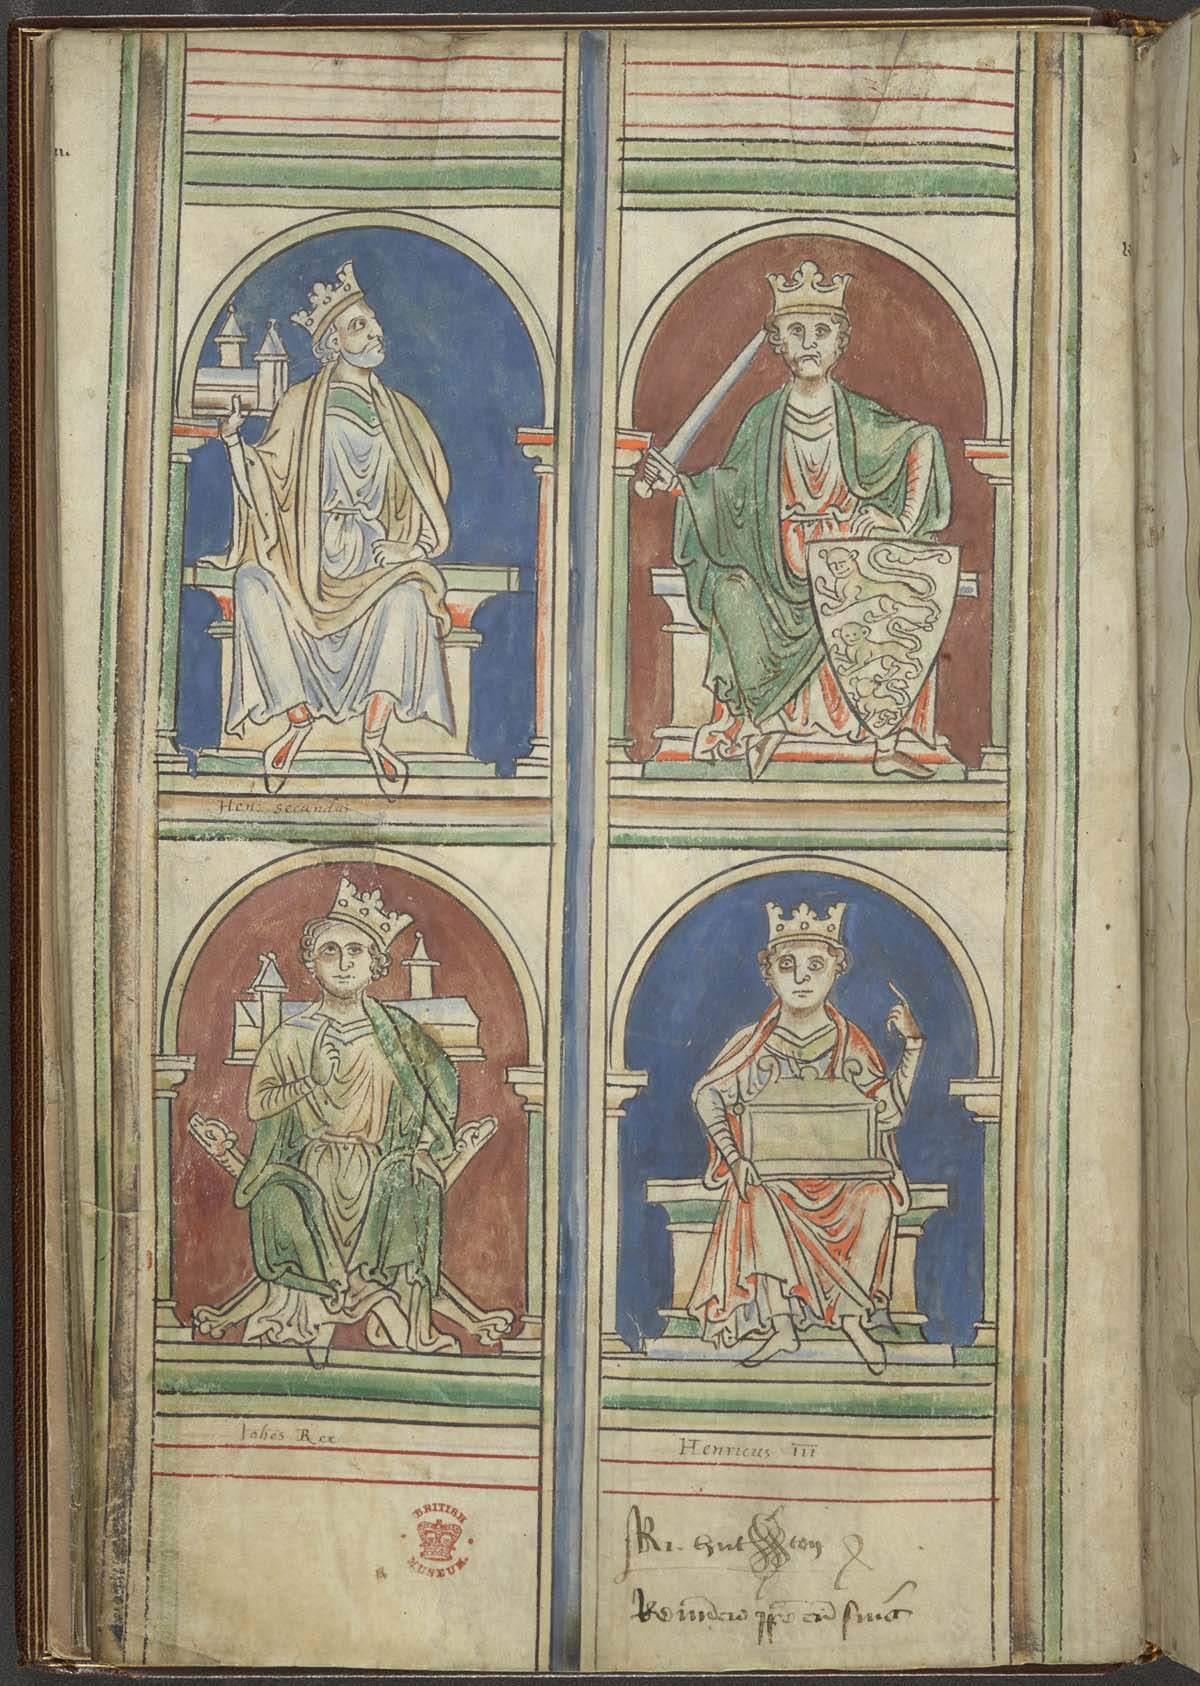 medieveal manuscript drawing of fo9ur English kings with crowns seated on their thrones